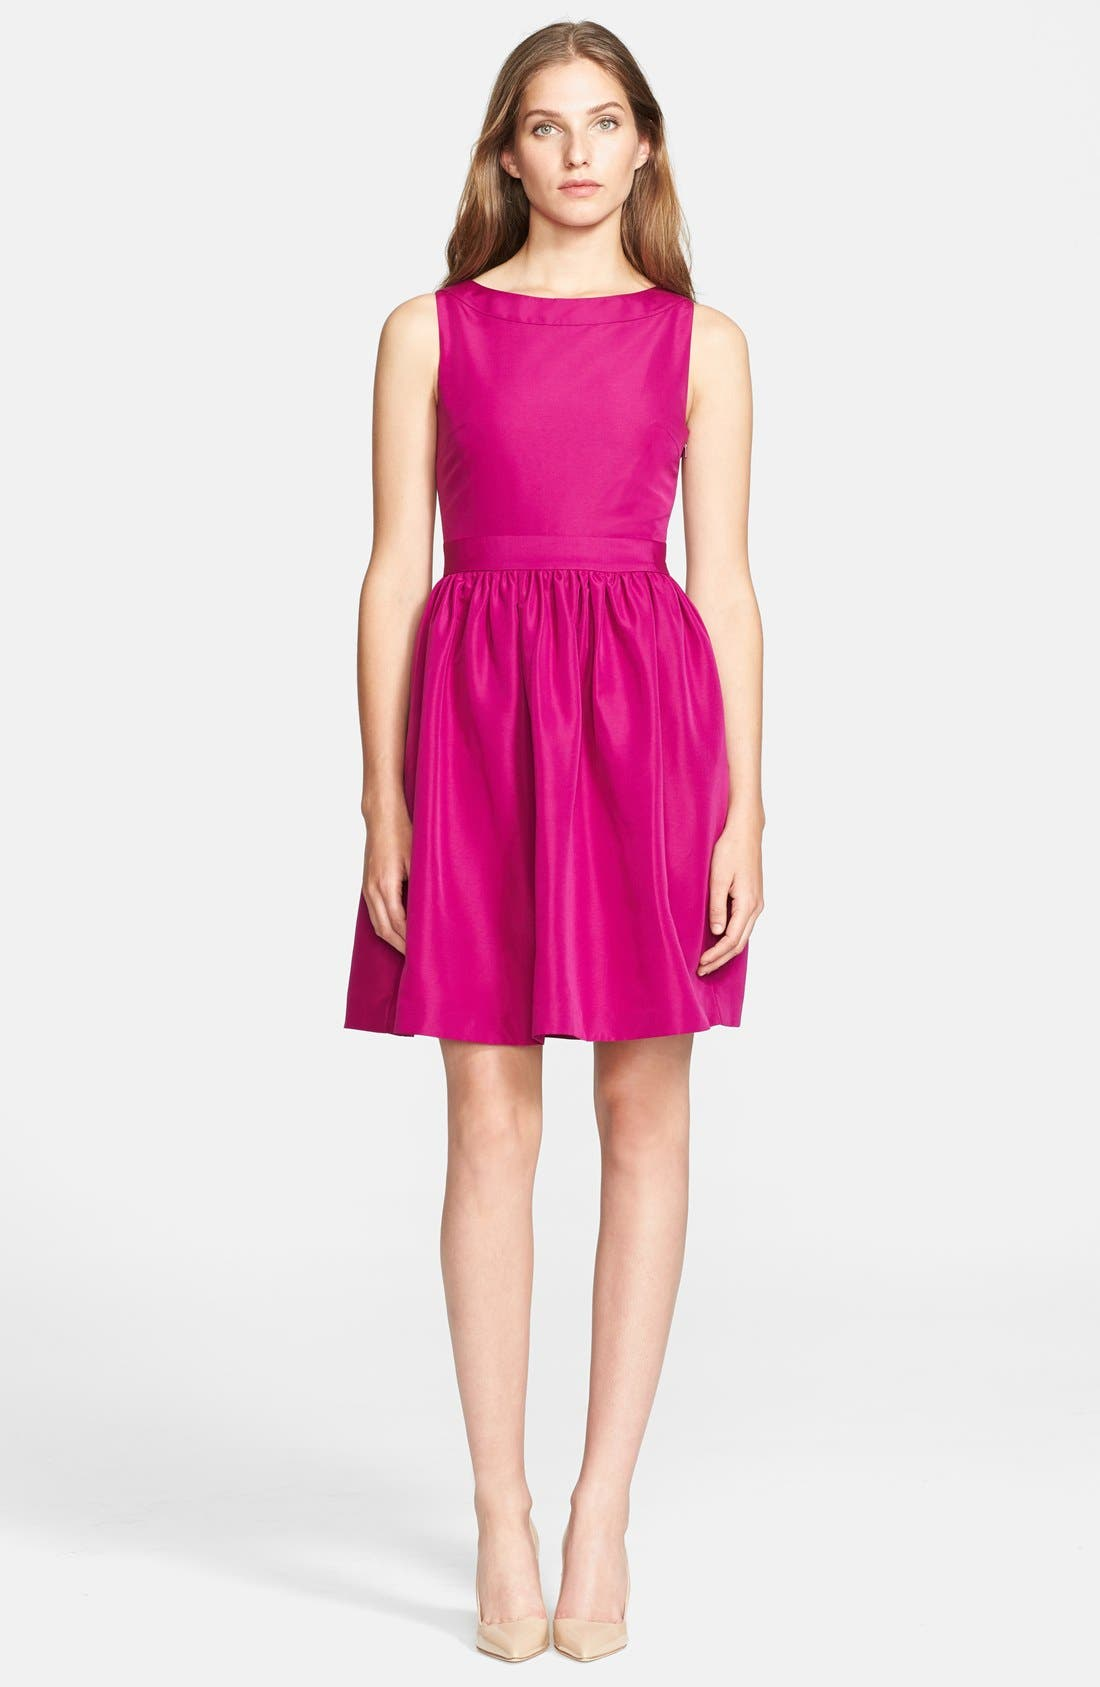 Alternate Image 1 Selected - Ted Baker London 'Juletee' Stretch Woven Fit & Flare Dress